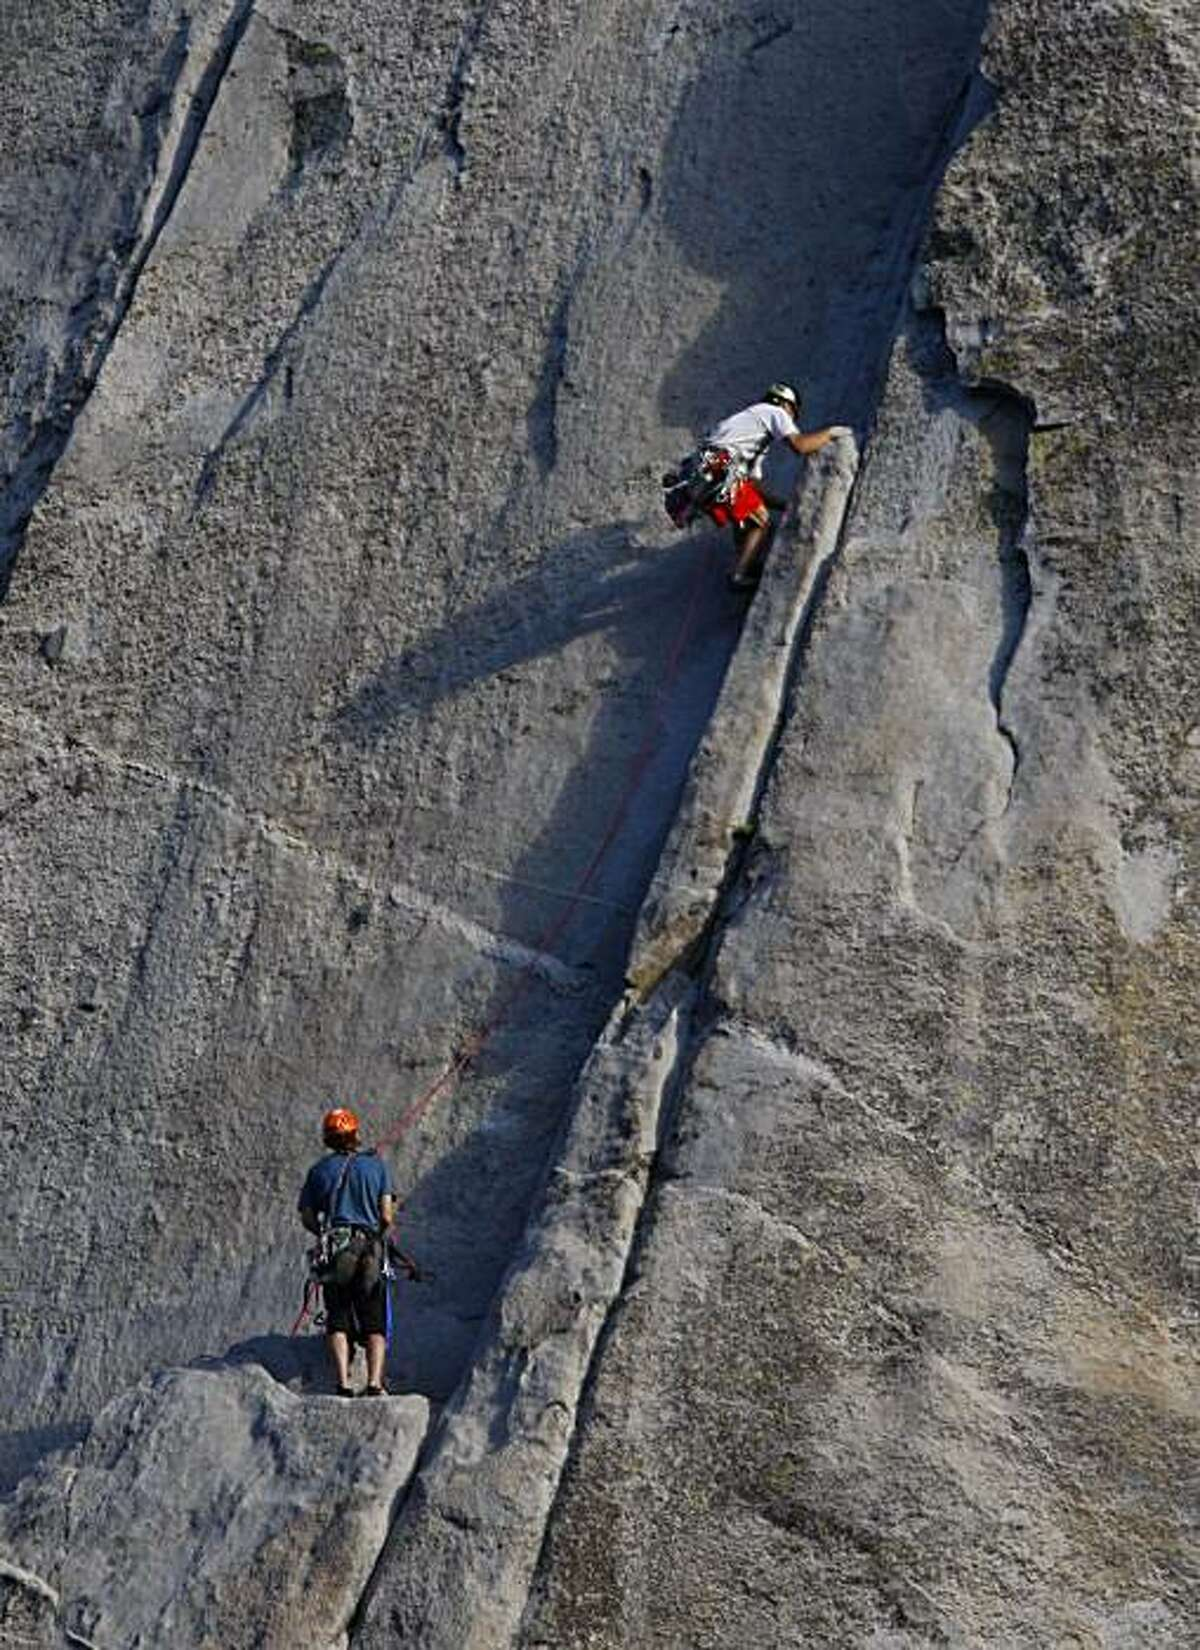 Rock climbers Yuji Hirayama, top, of Japan and Hans Florine of Lafayette, Calif., bottom, climb up the Nose Route of El Capitan in Yosemite National Park on September 29, 2008. They were on a practice climb as a warm up to a later attempt to break their own speed climbing record of 2 hours, 43 minutes and 33 seconds.